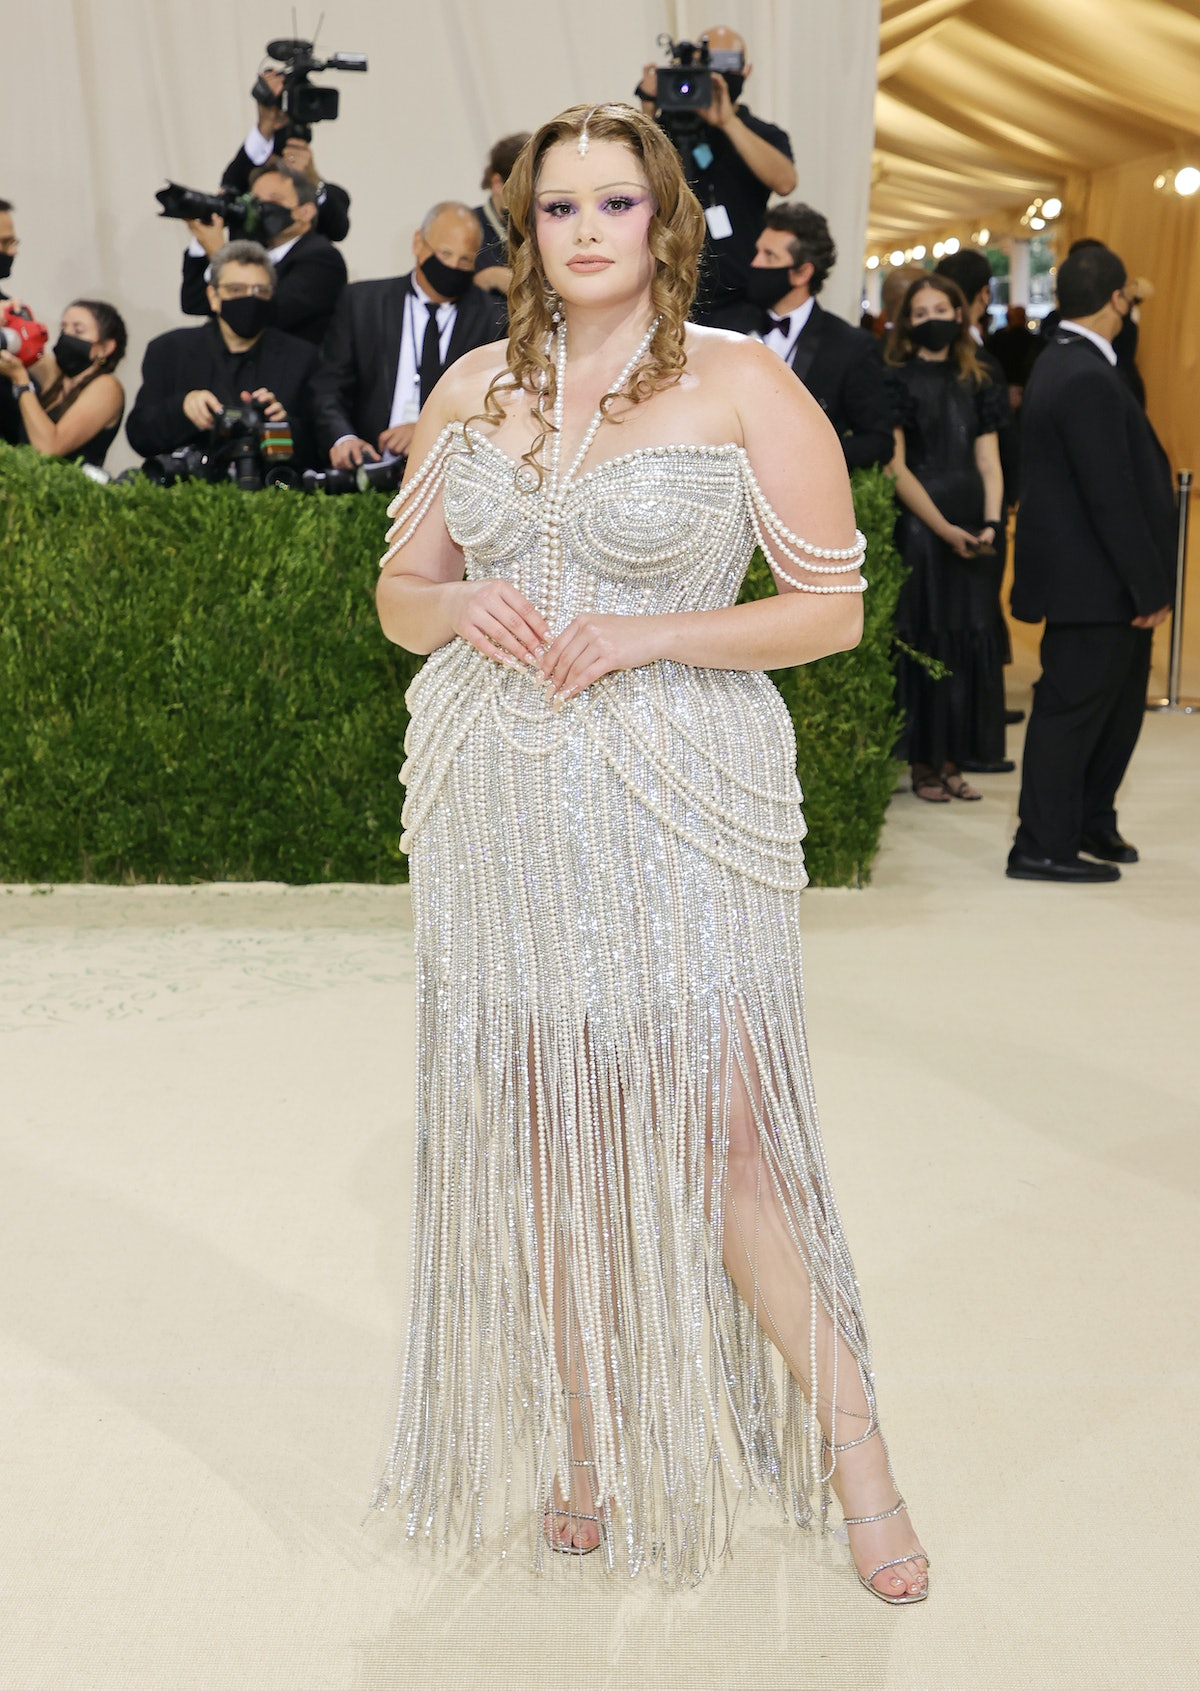 Barbie Ferreira attends The 2021 Met Gala Celebrating In America: A Lexicon Of Fashion at Metropolit...